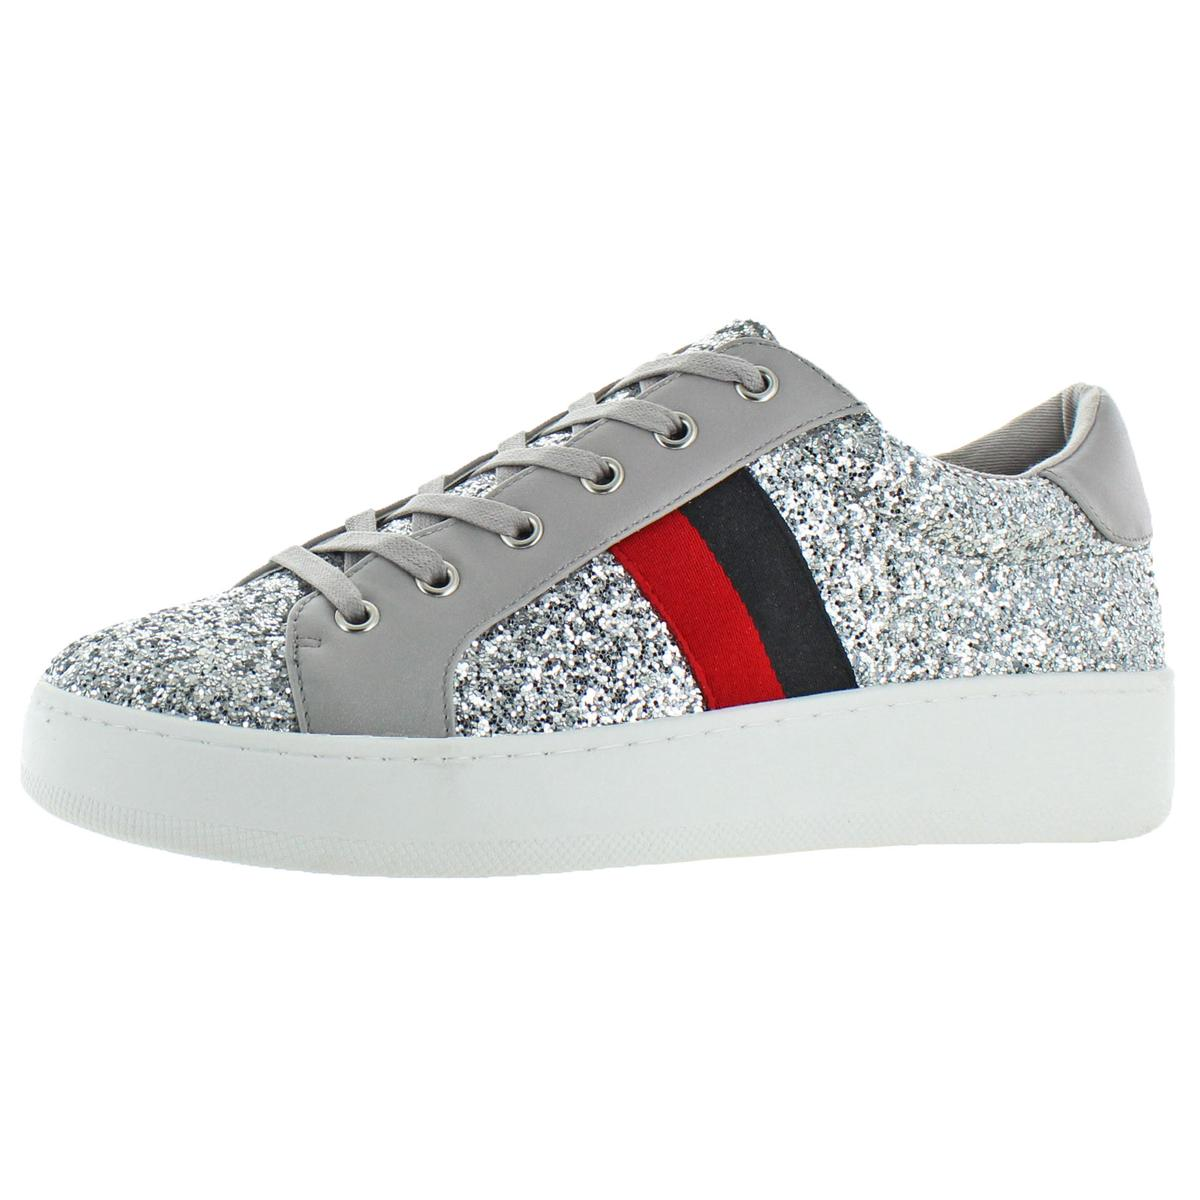 b752c66ddfb Details about Steve Madden Womens Belle Silver Fashion Sneakers Shoes 8  Medium (B